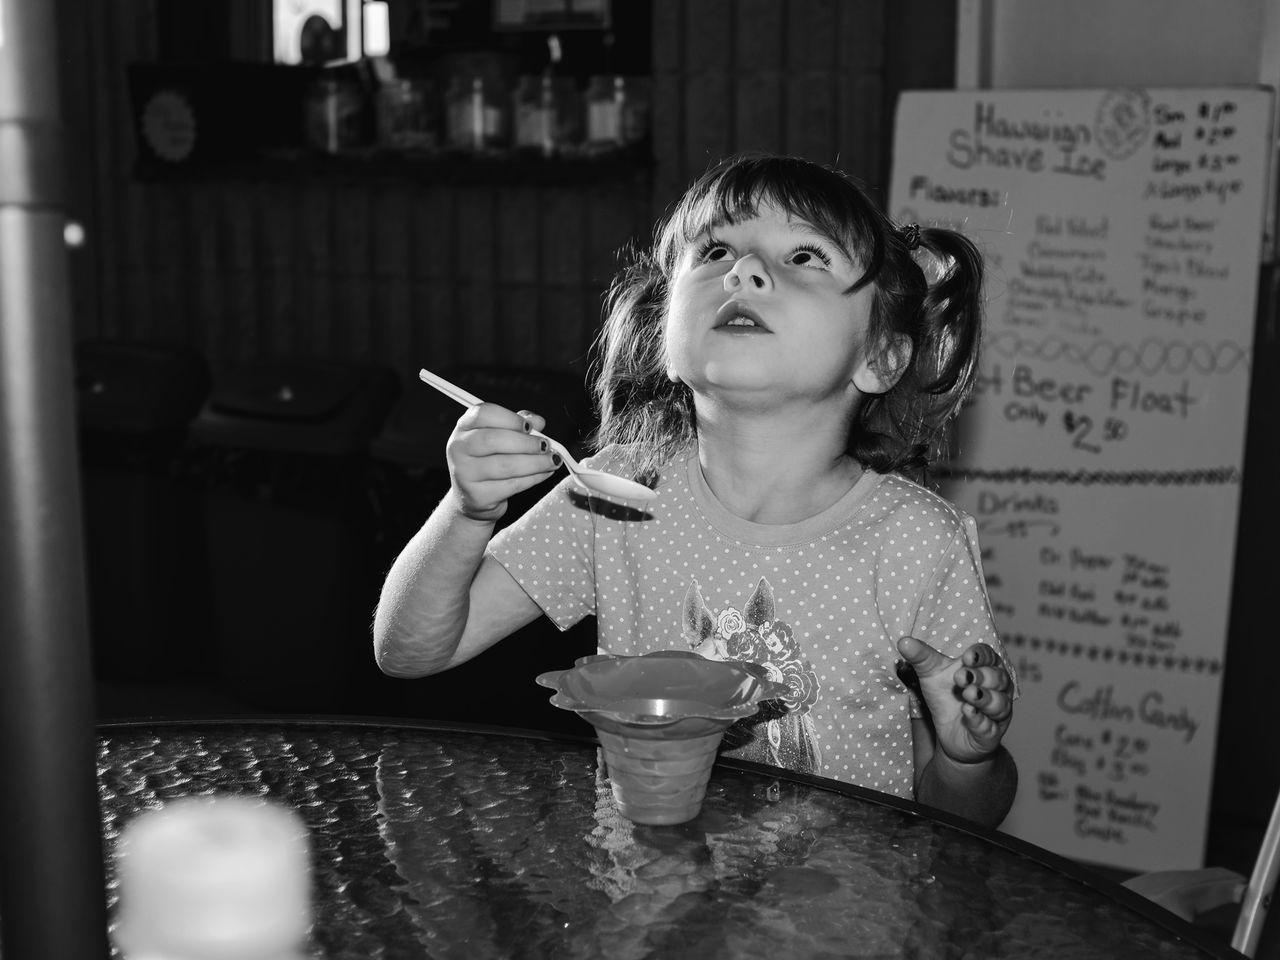 Visual journal May 2017 Beatrice. Nebraska A Day In The Life B&w Photography Camera Work Candid Portraits Casual Clothing Childhood Everyday Lives Eye For Photography EyeEm Best Shots EyeEm Gallery Fill Flash Food And Drink Fujifilm EF-20 FUJIFILM X100S Girls Lifestyles One Person People Photo Diary Practicing Photography Real People Shaved Ice Small Town Stories Storytelling Visual Journal